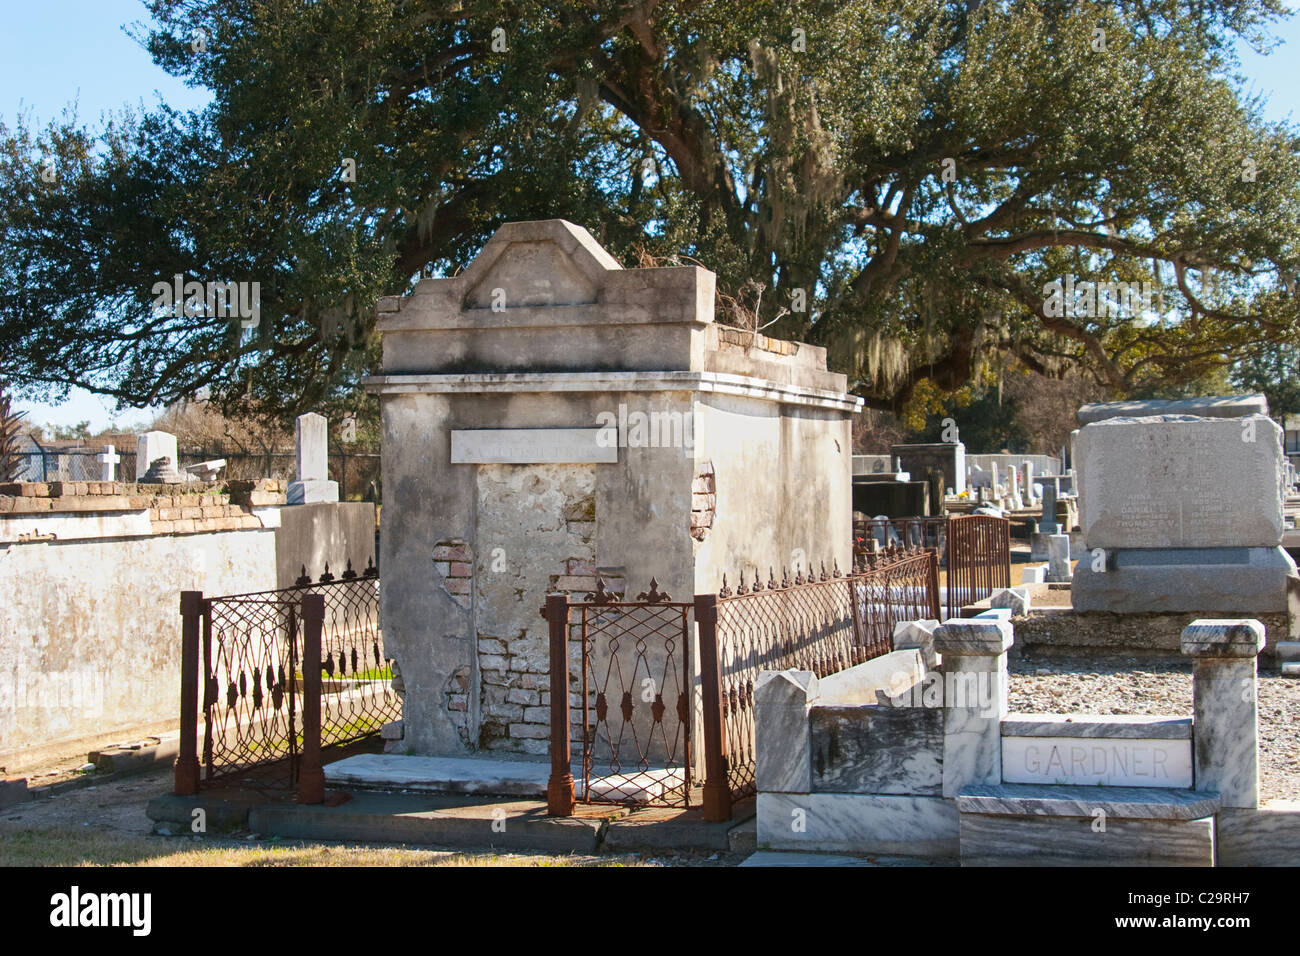 Antique tomb with iron fencing shaded by a 100 year old Live Oak tree, in a New Orleans cemetery. - Stock Image